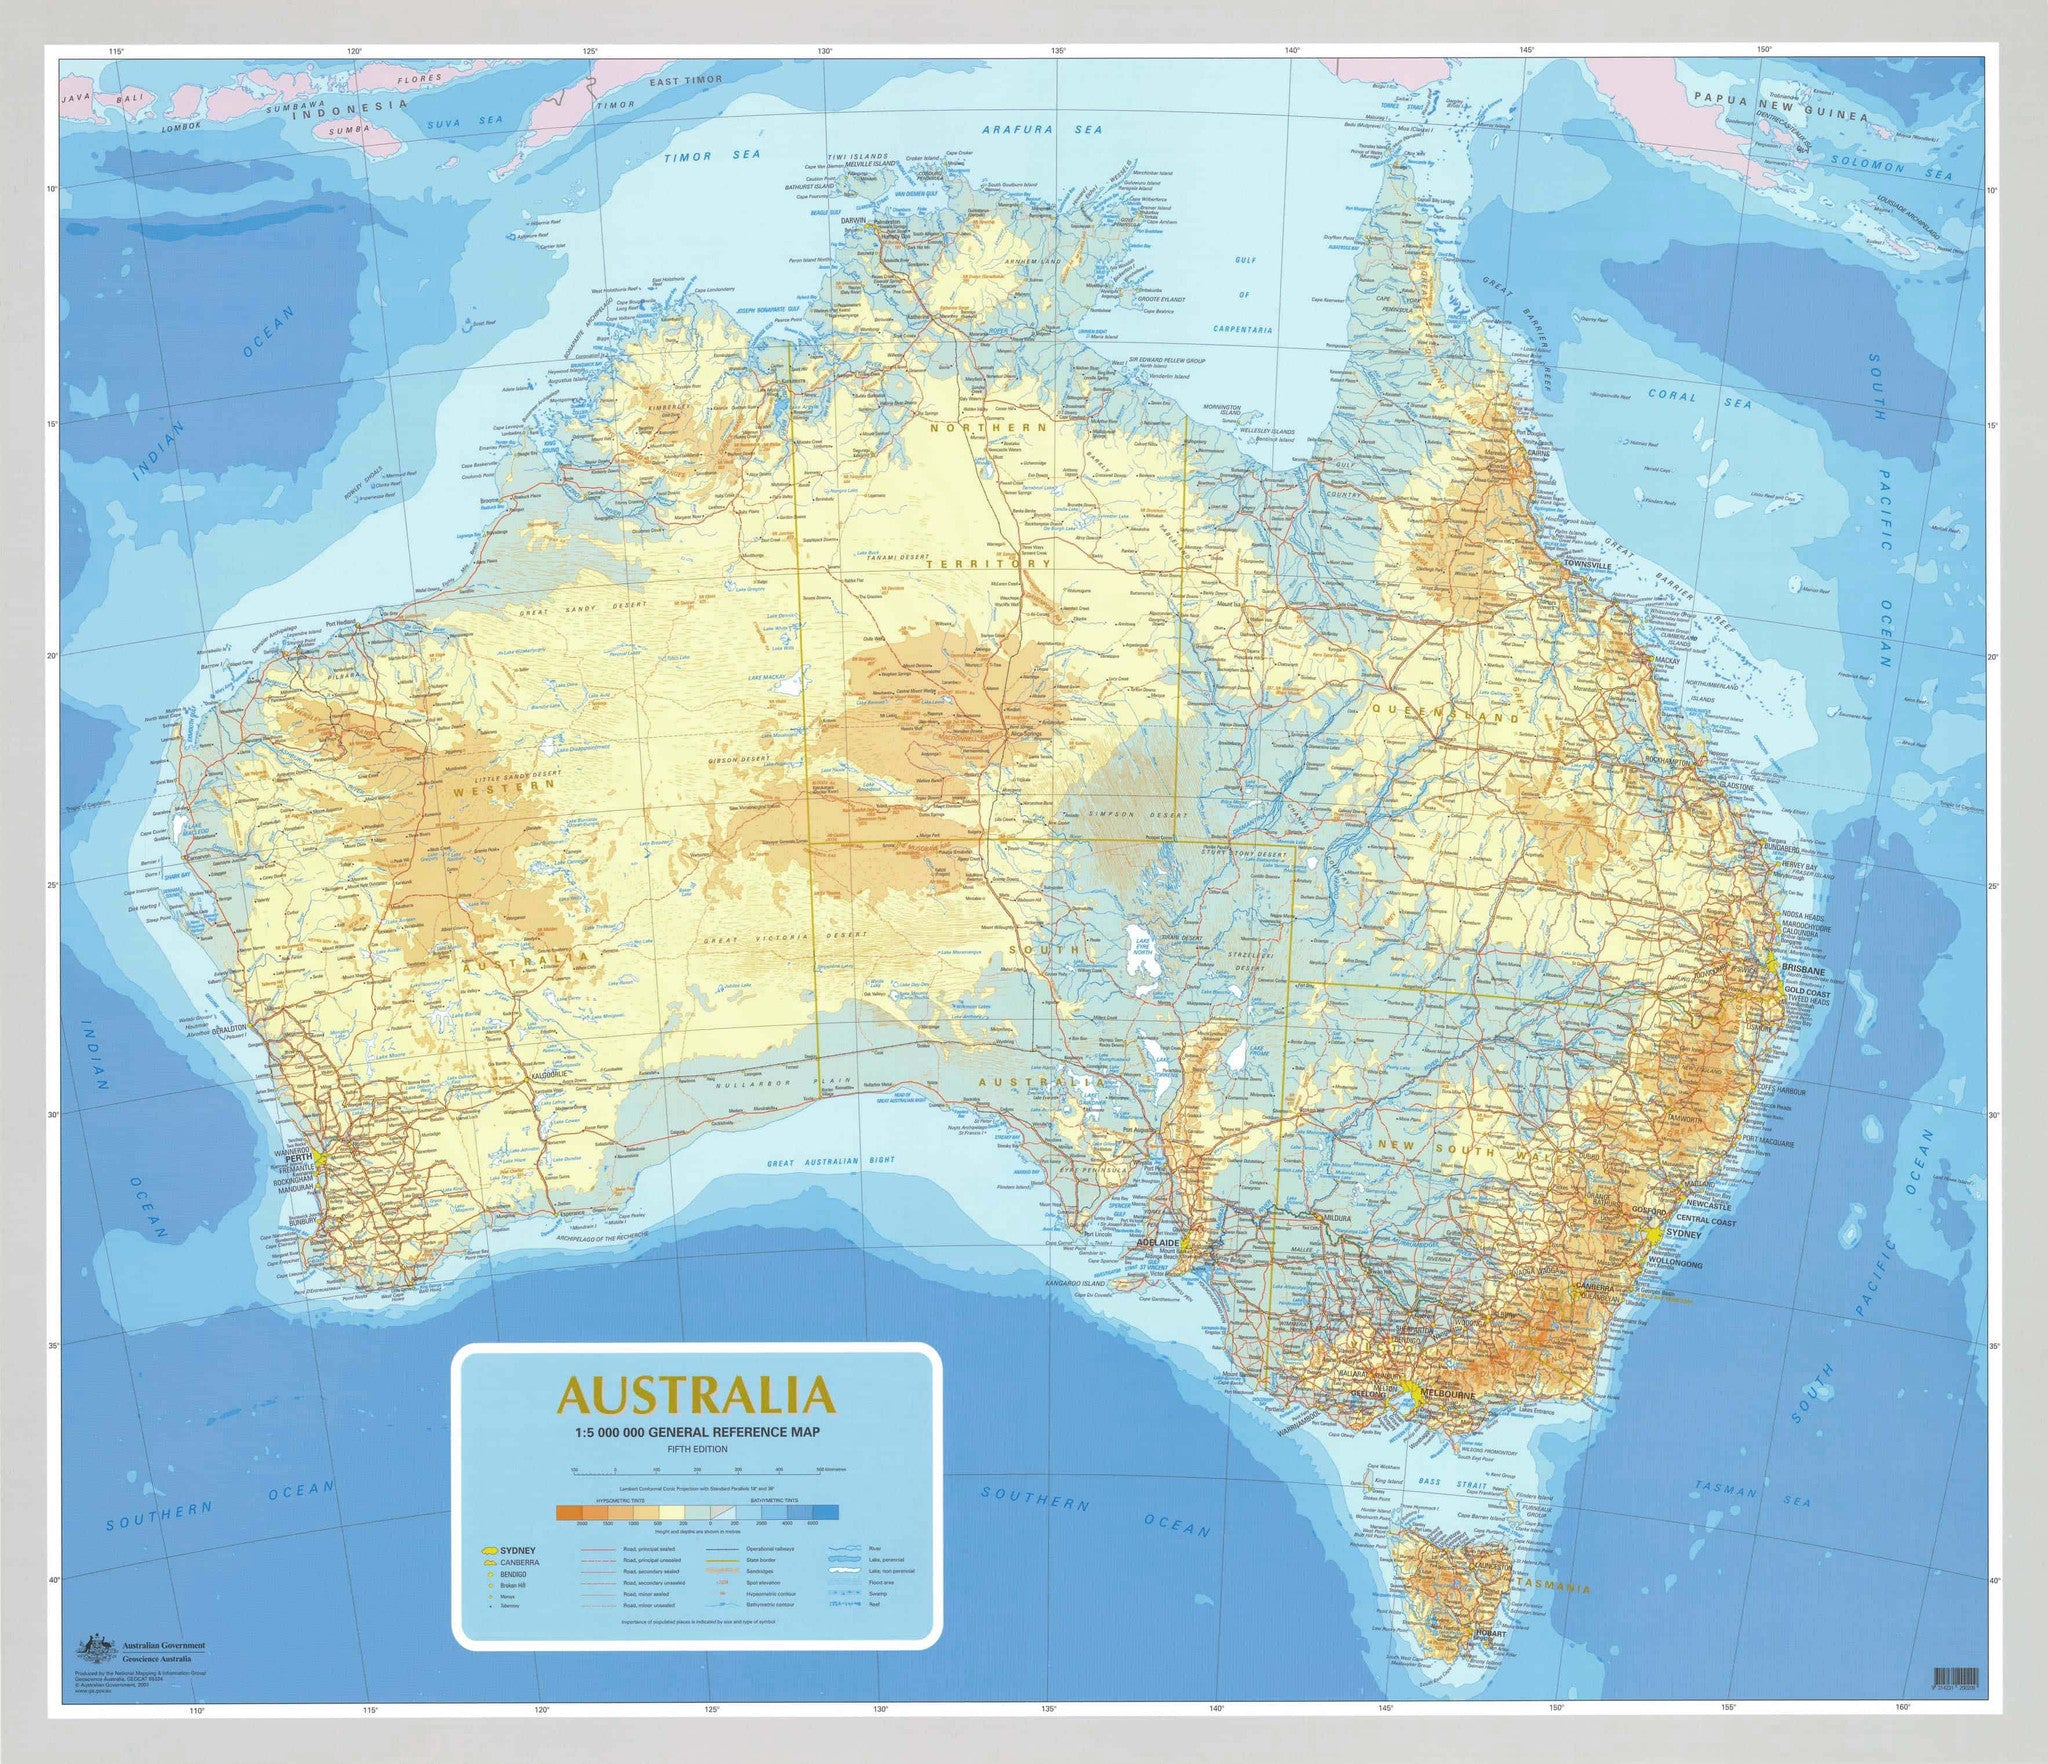 Map Of Australia Physical Features.Australia 5m General Reference 1000 X 870mm Map Laminated Wall Map